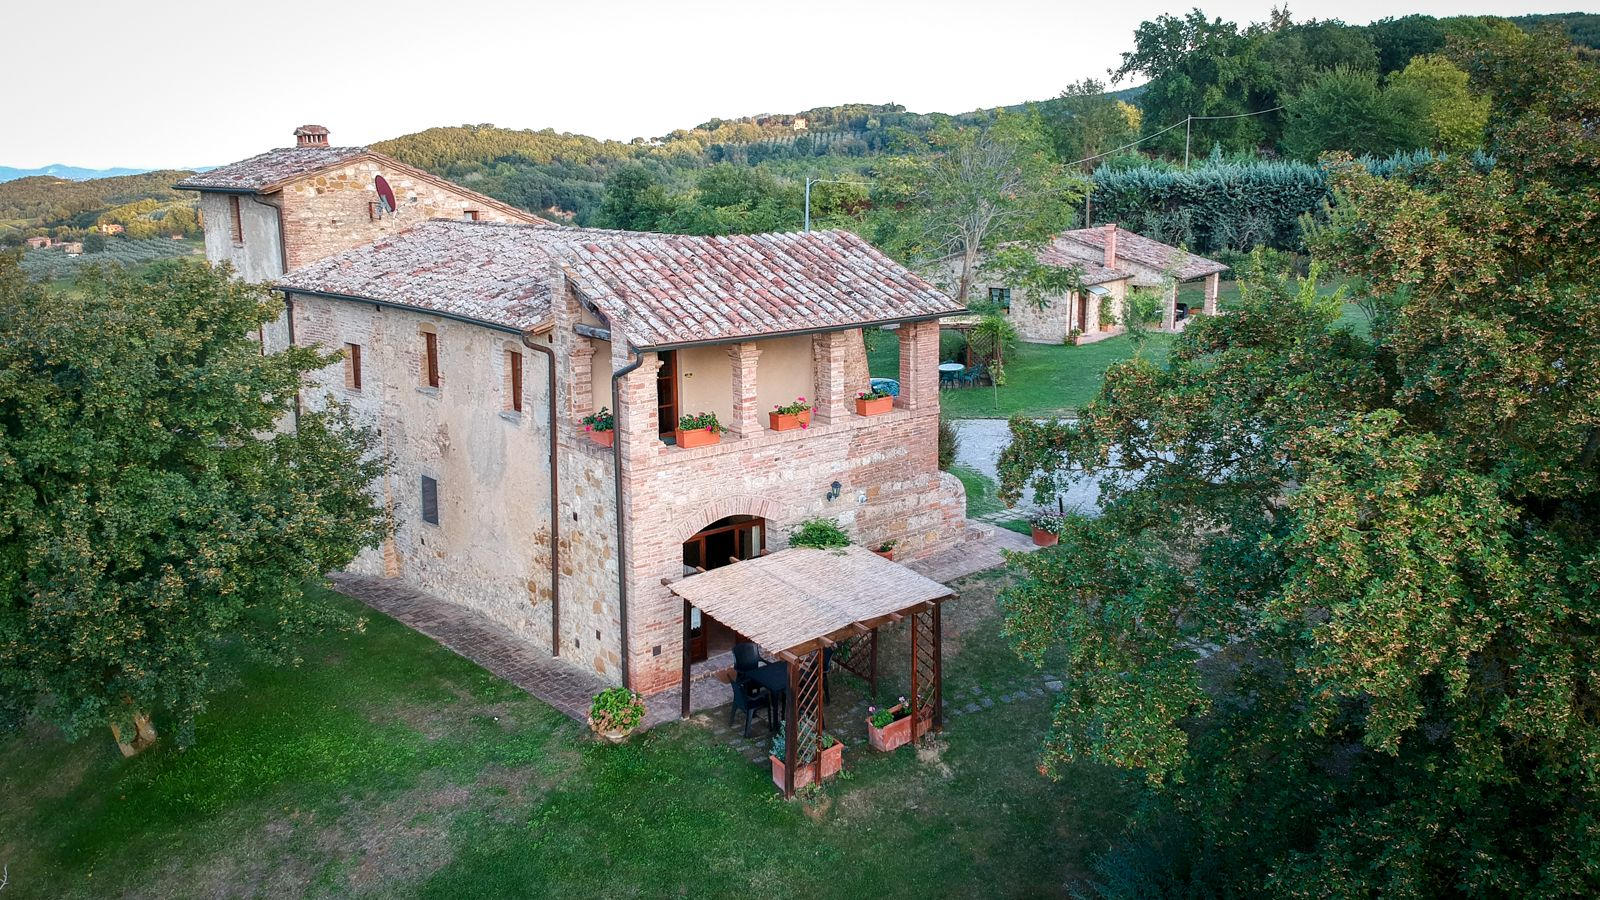 Our apartment at Agriturismo Nobile